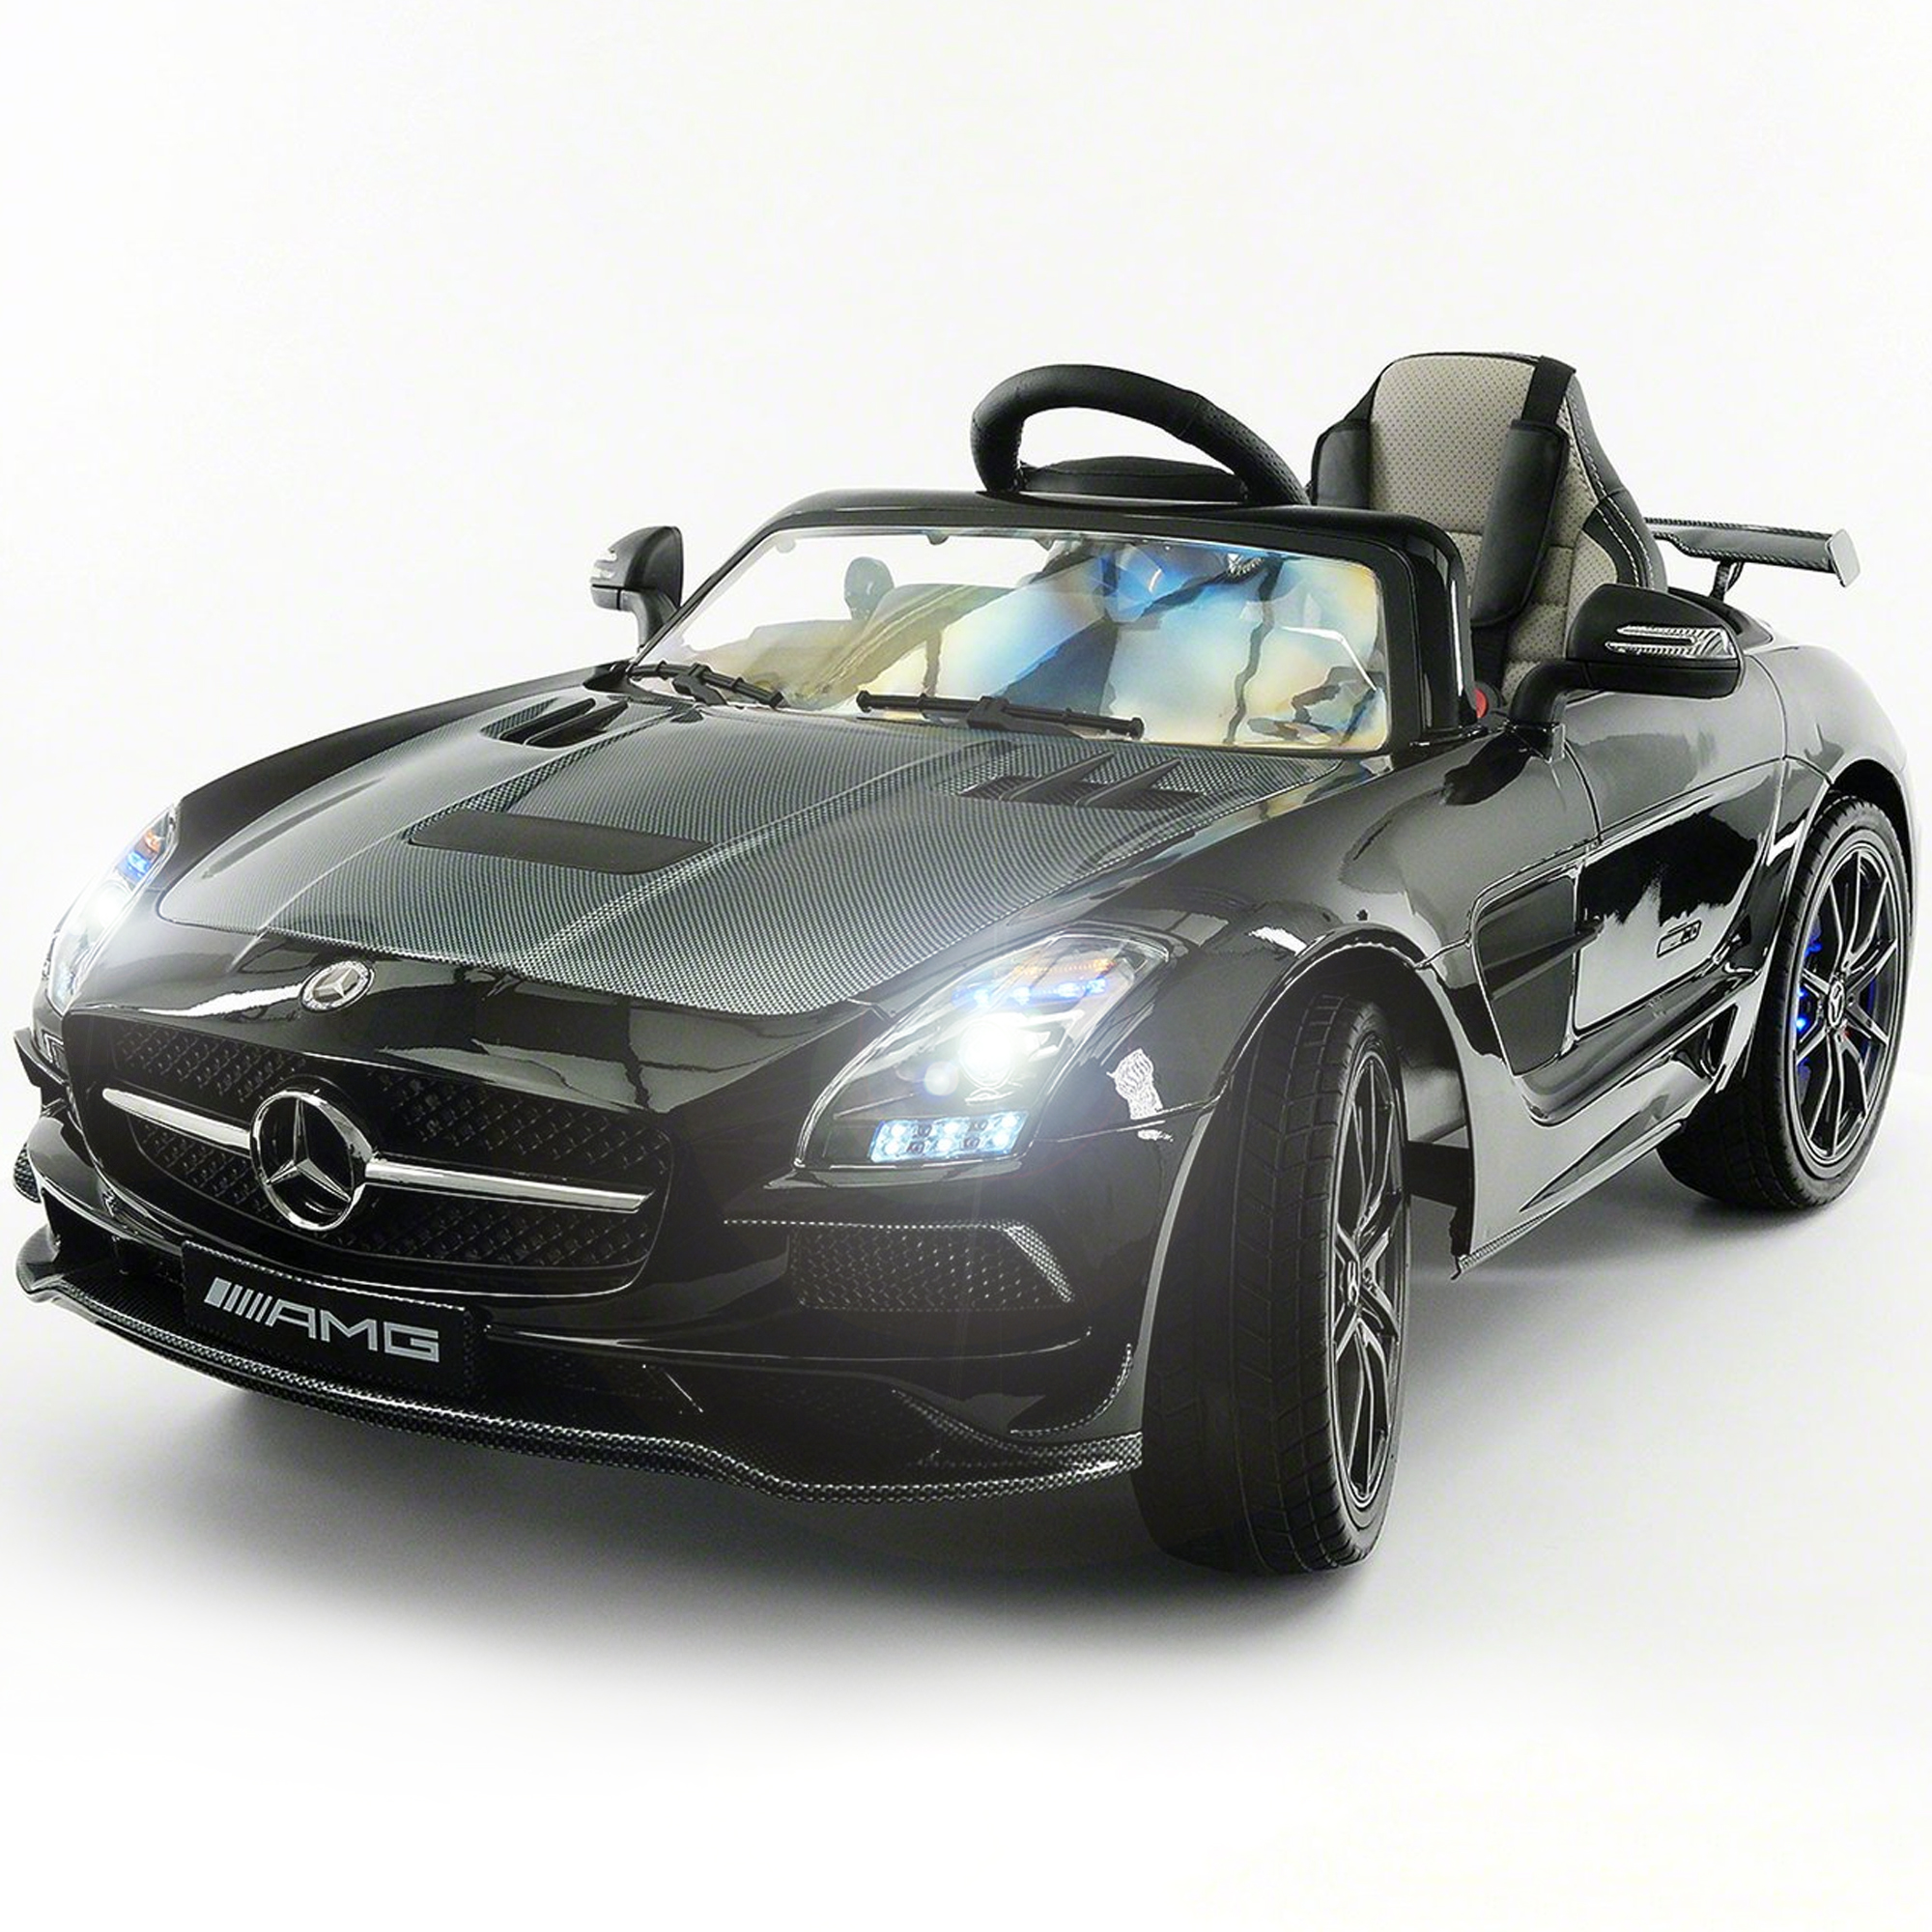 2019 Mercedes SLS AMG 12V Battery Powered Motorized Ride on Toy Car with Built in LCD TV, LED Lights, Leather... by